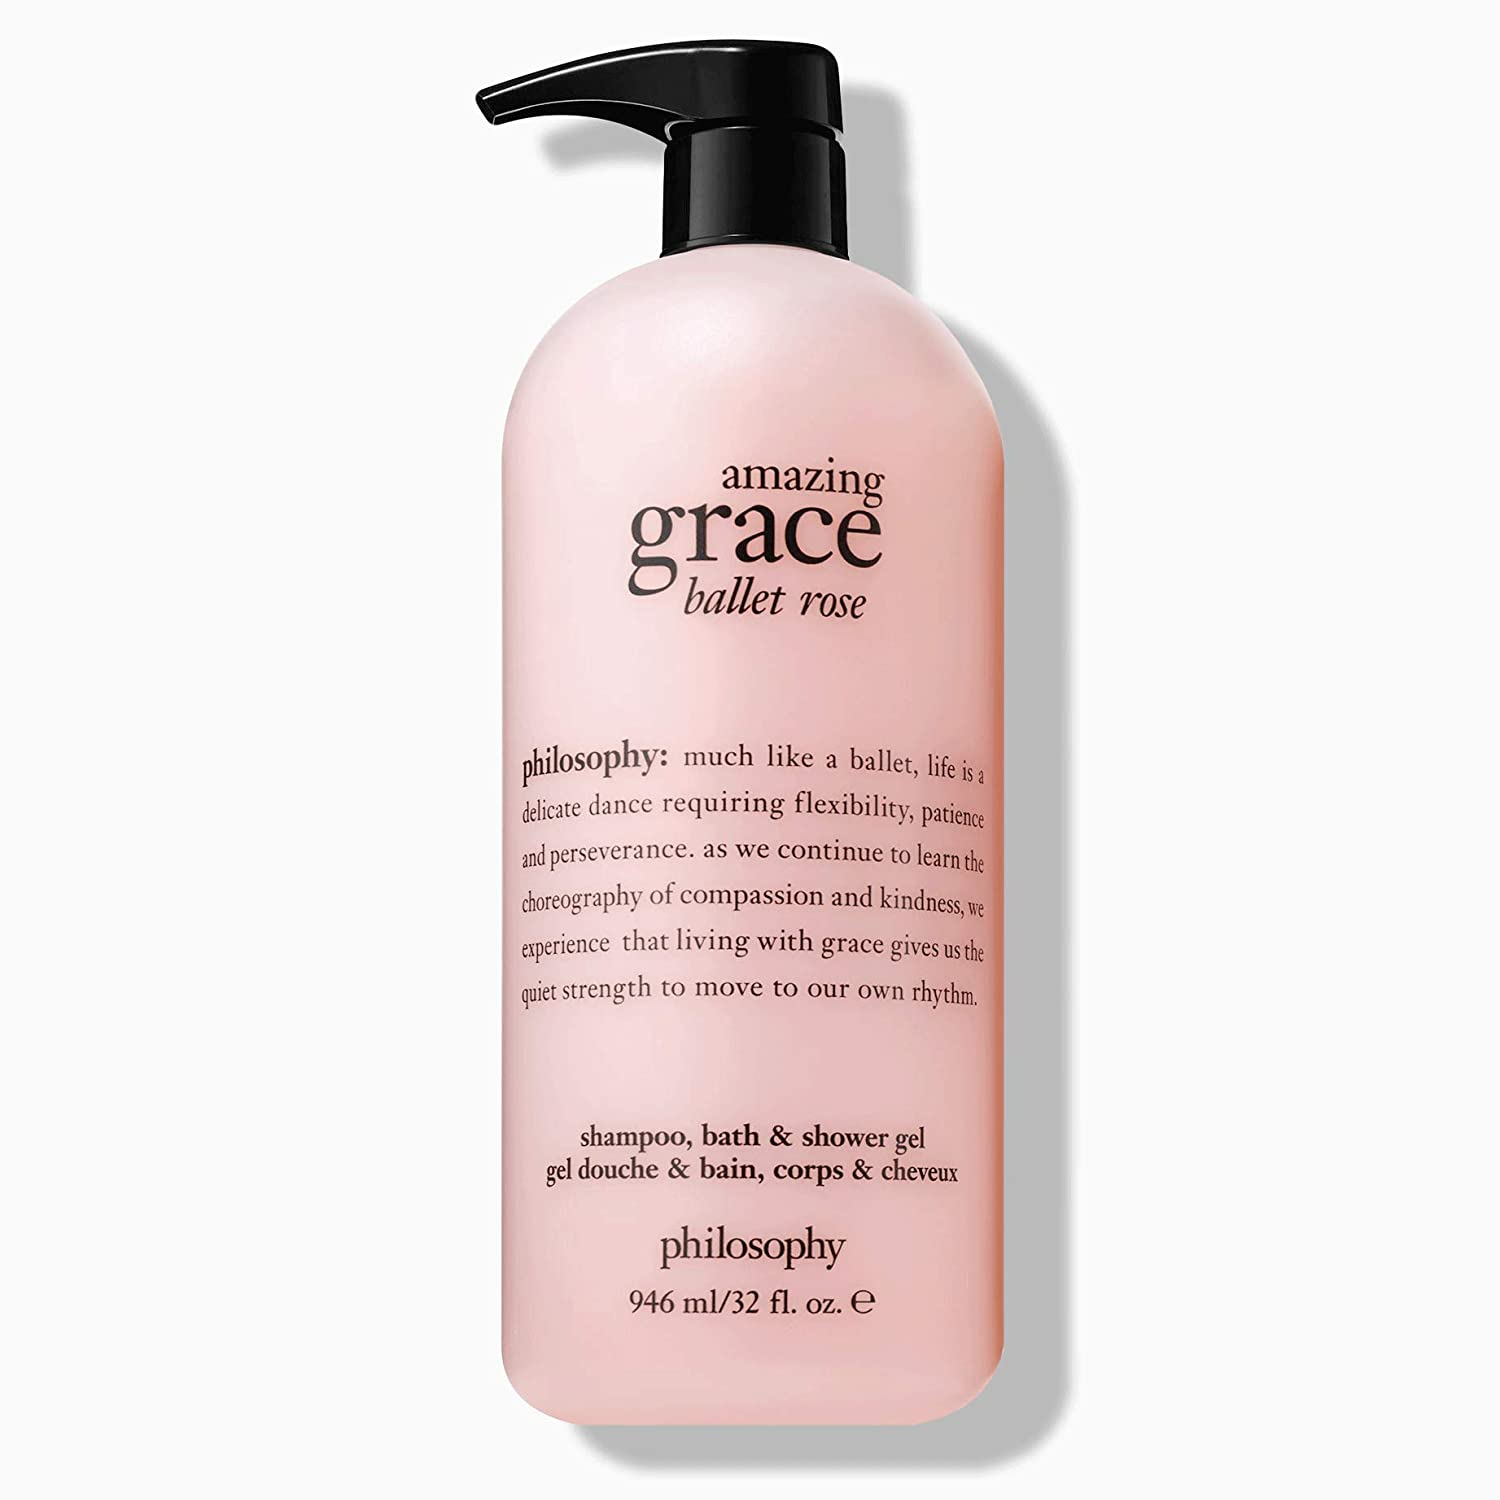 Philosophy Amazing Grace Ballet Rose Shampoo, Bath Shower Gel 32 oz